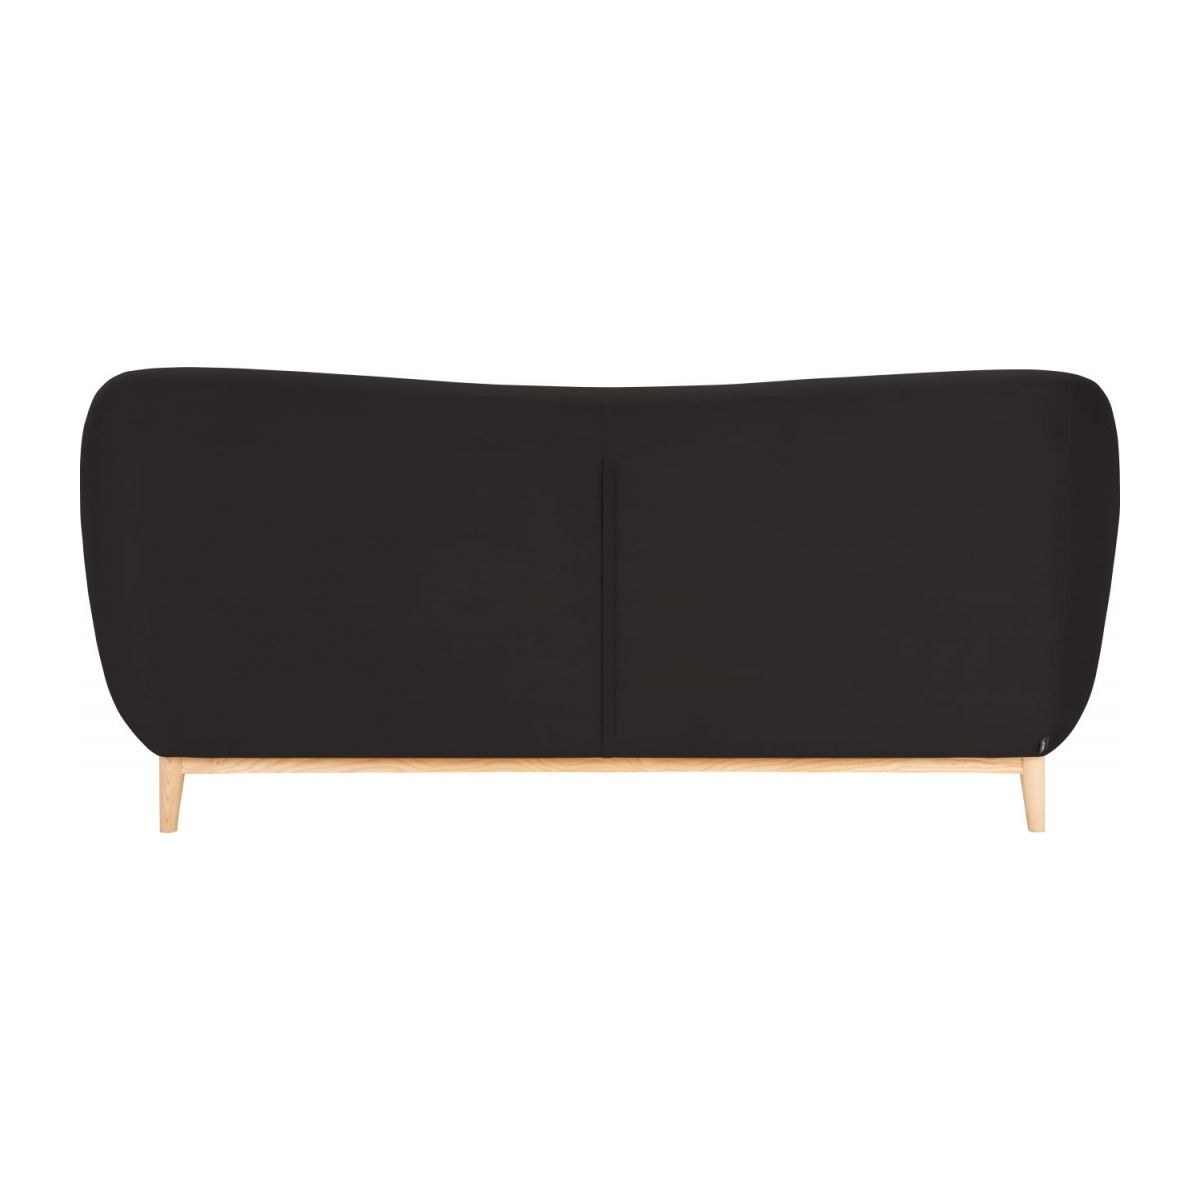 2-seat sofa made of velvet, grey n°4